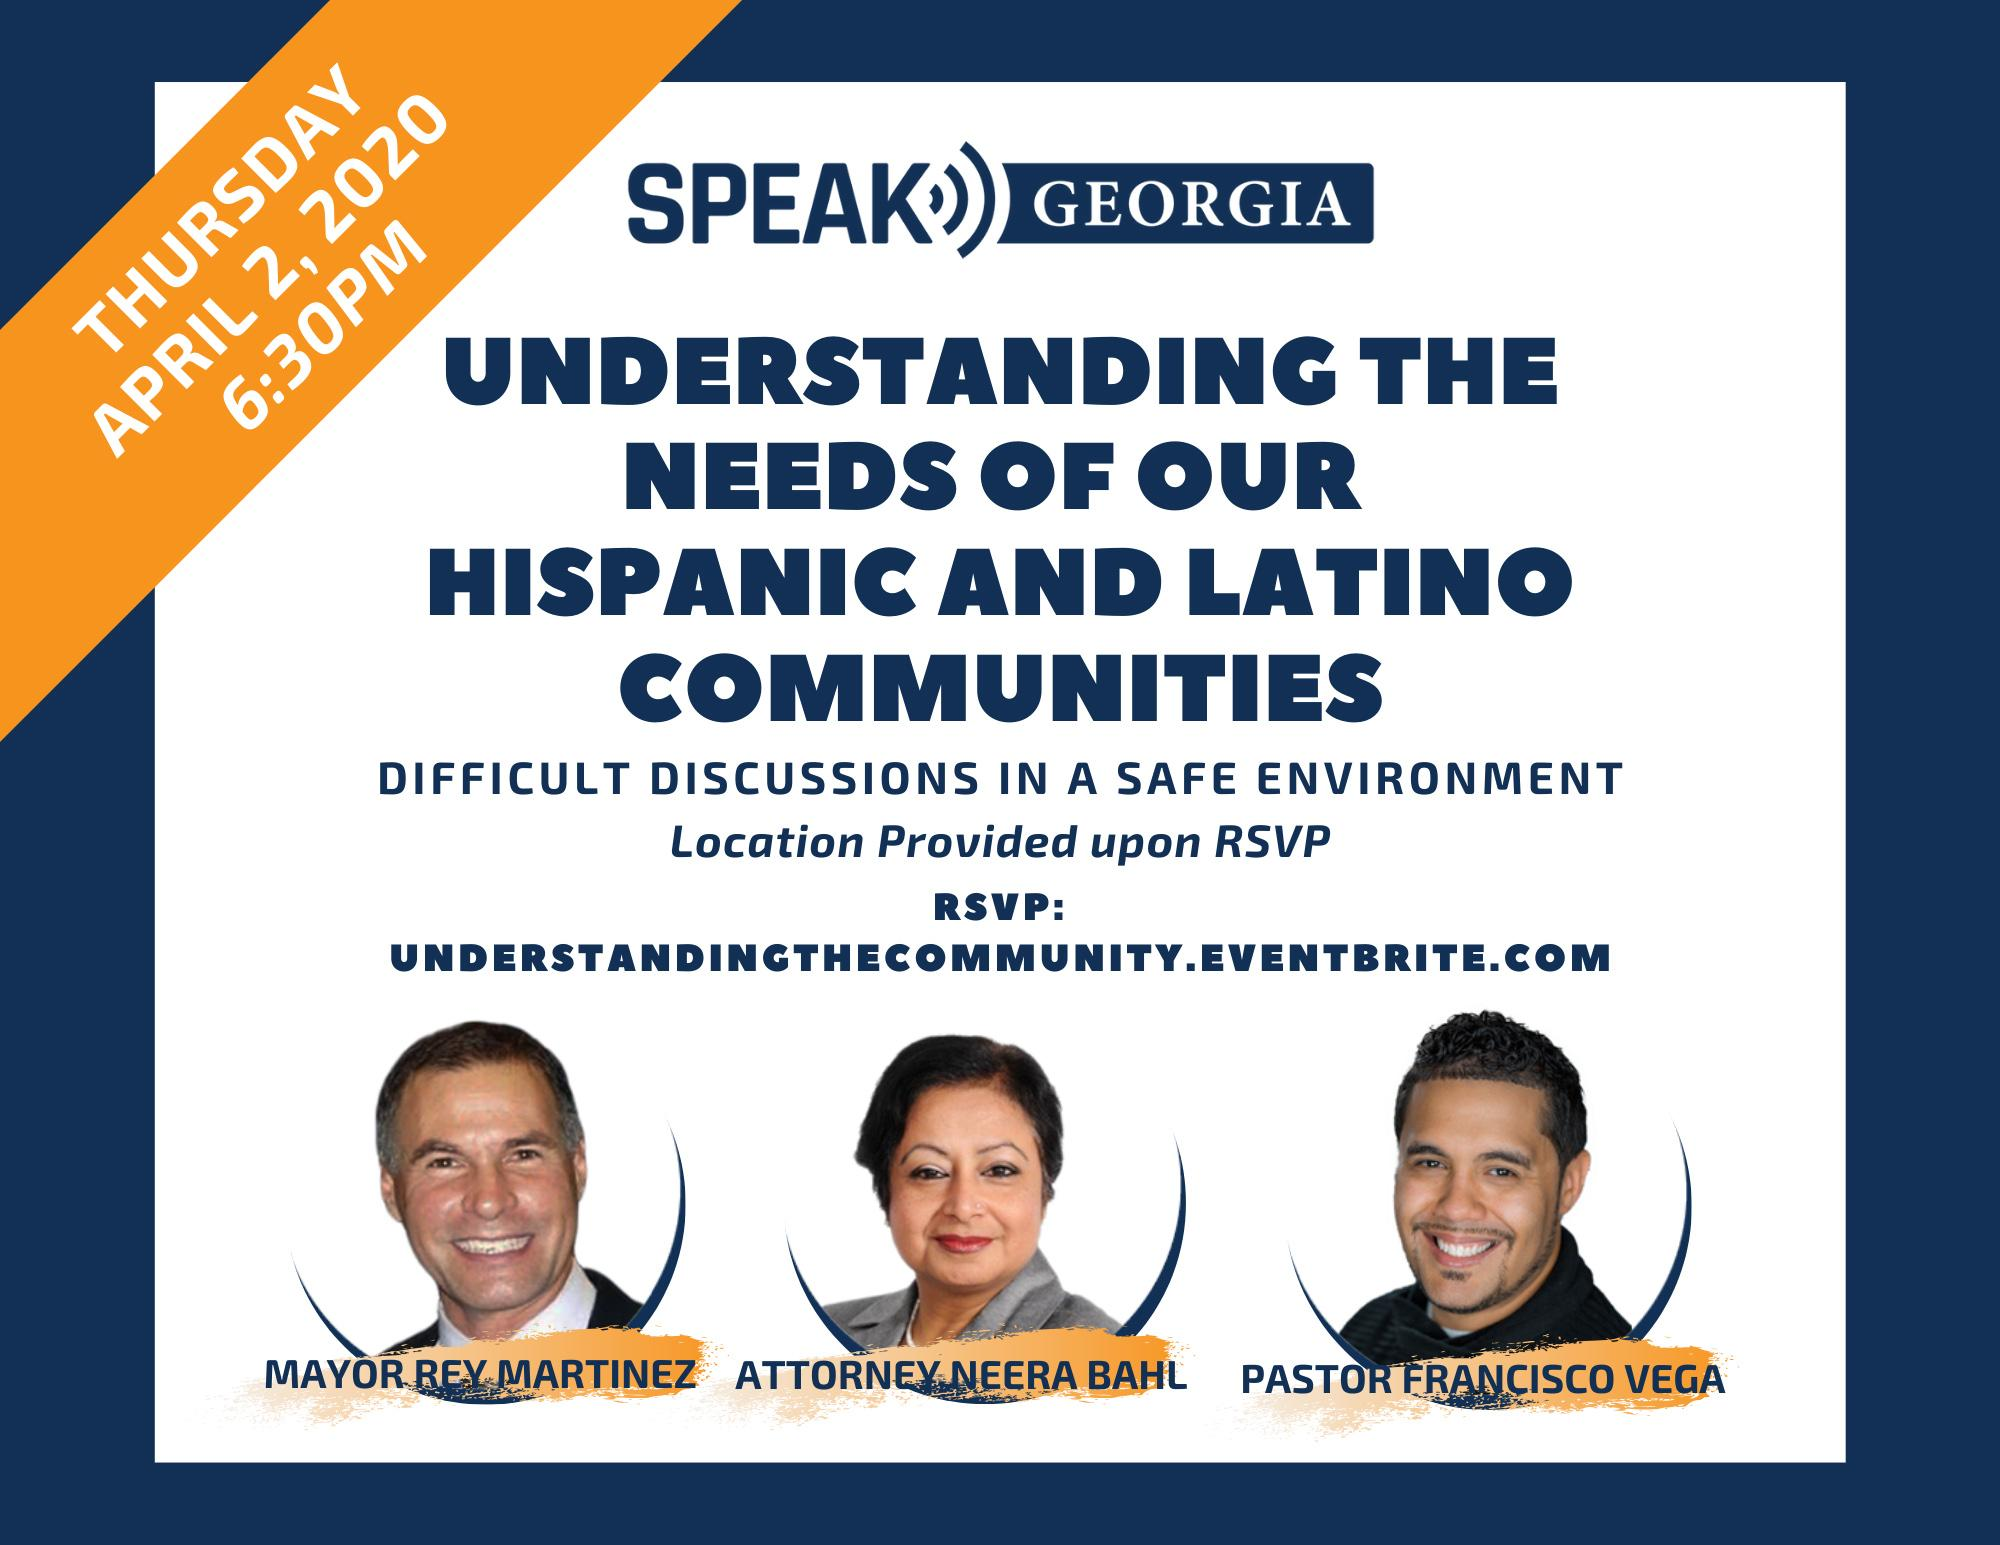 Speak Georgia - Townhall: Understanding the needs of the Hispanic and Latino Communities - April 2, 2020